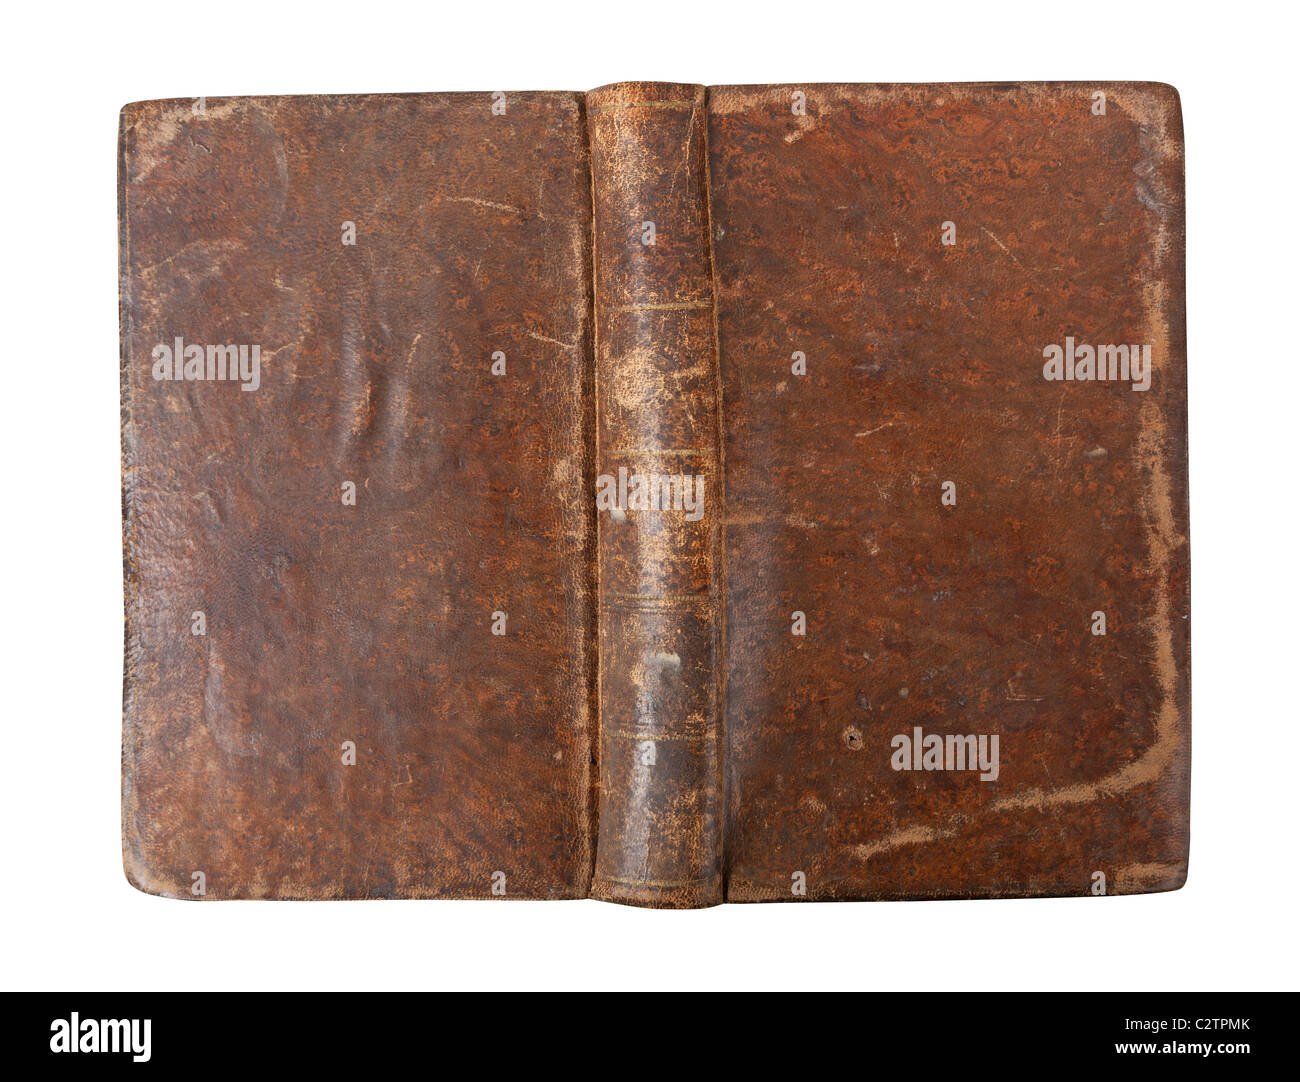 Old book with wear and tear isolated on white background - Stock Image